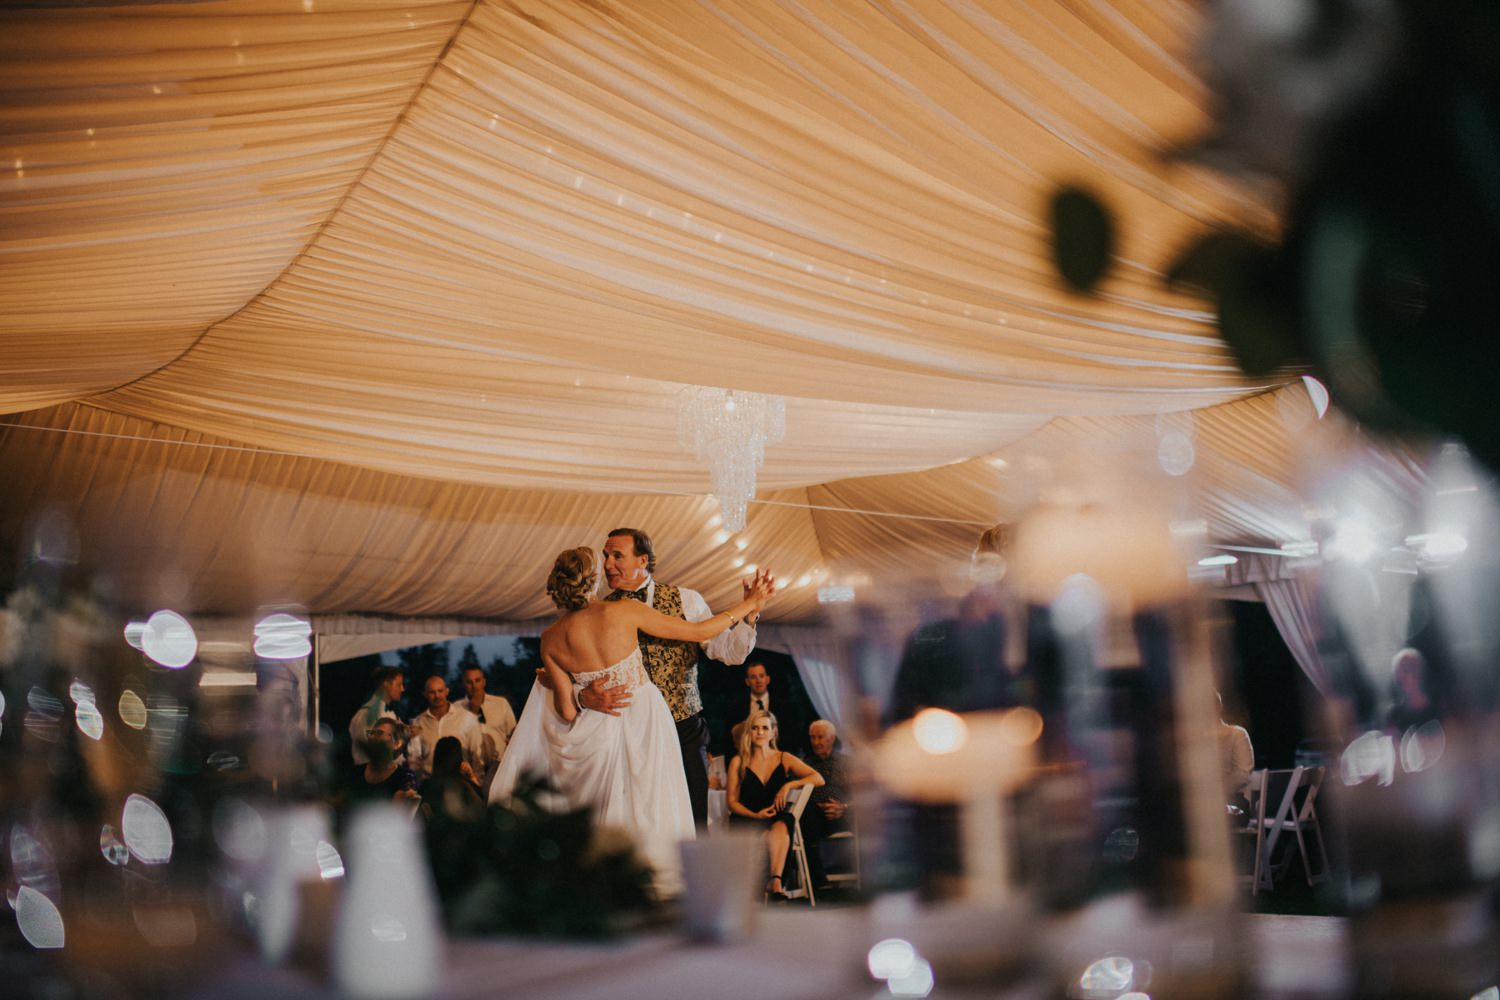 Wedding Dance at The Harvest Golf Club